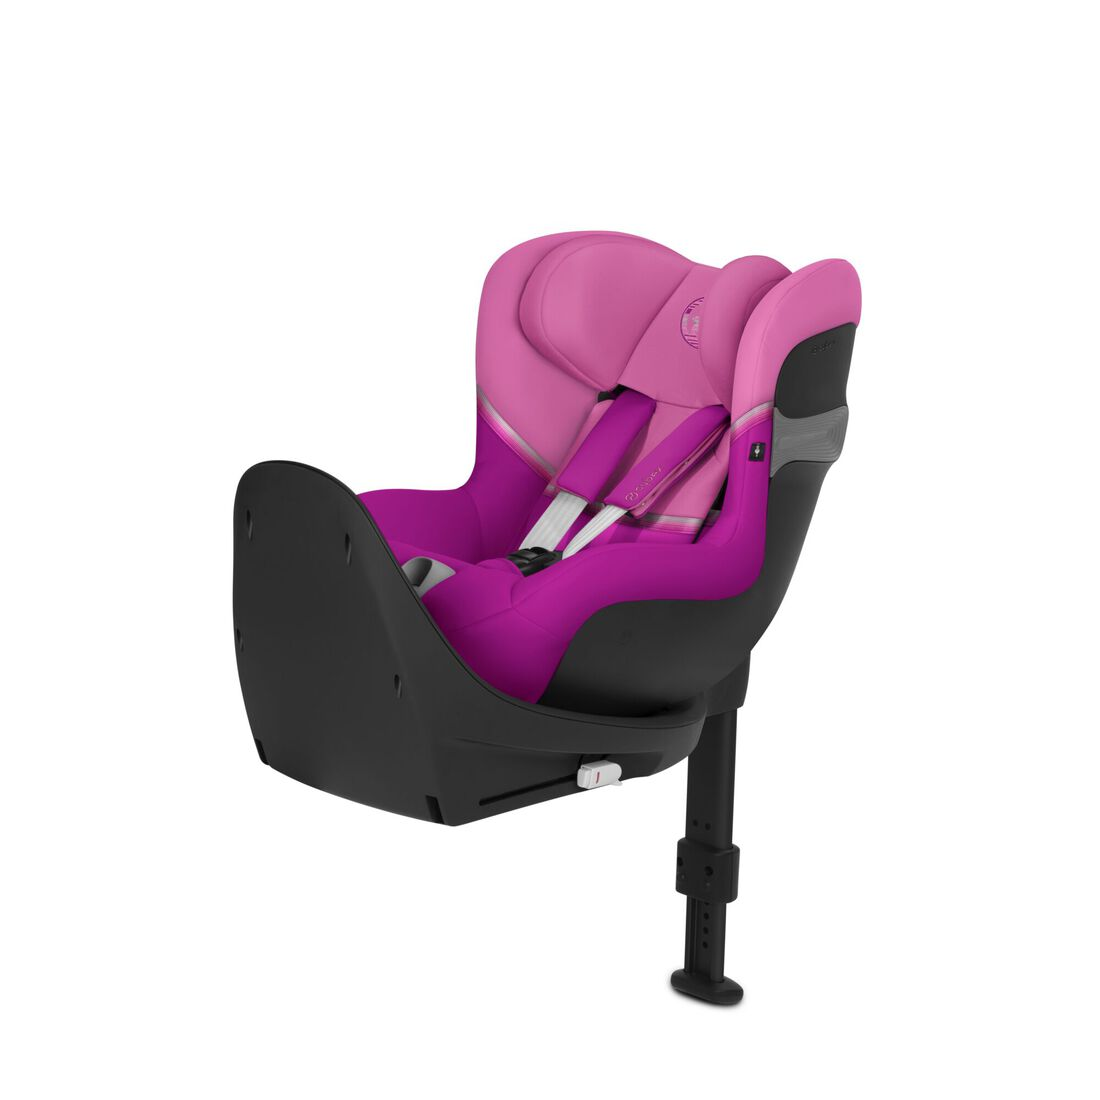 CYBEX Sirona S2 i-Size - Magnolia Pink in Magnolia Pink large image number 1